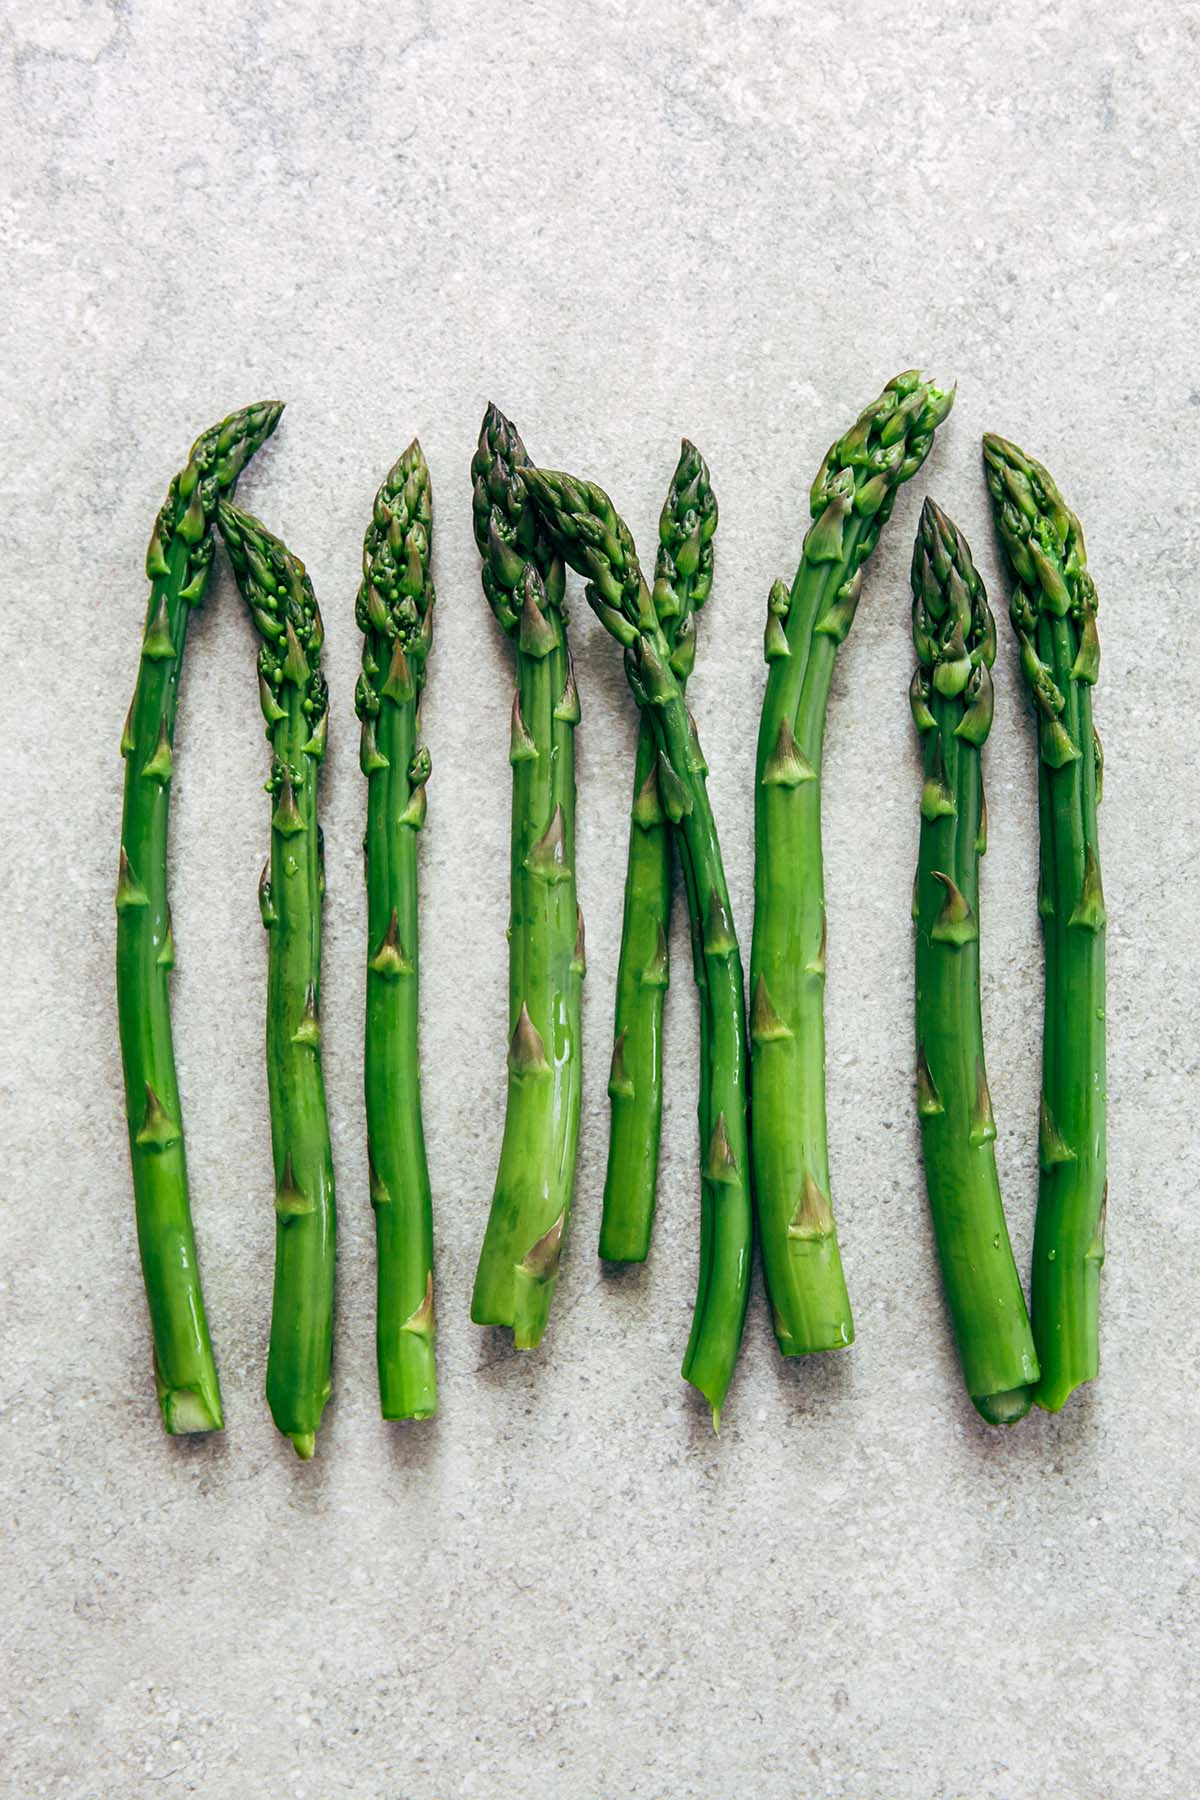 Blanched spears of asparagus laying on a stone surface.